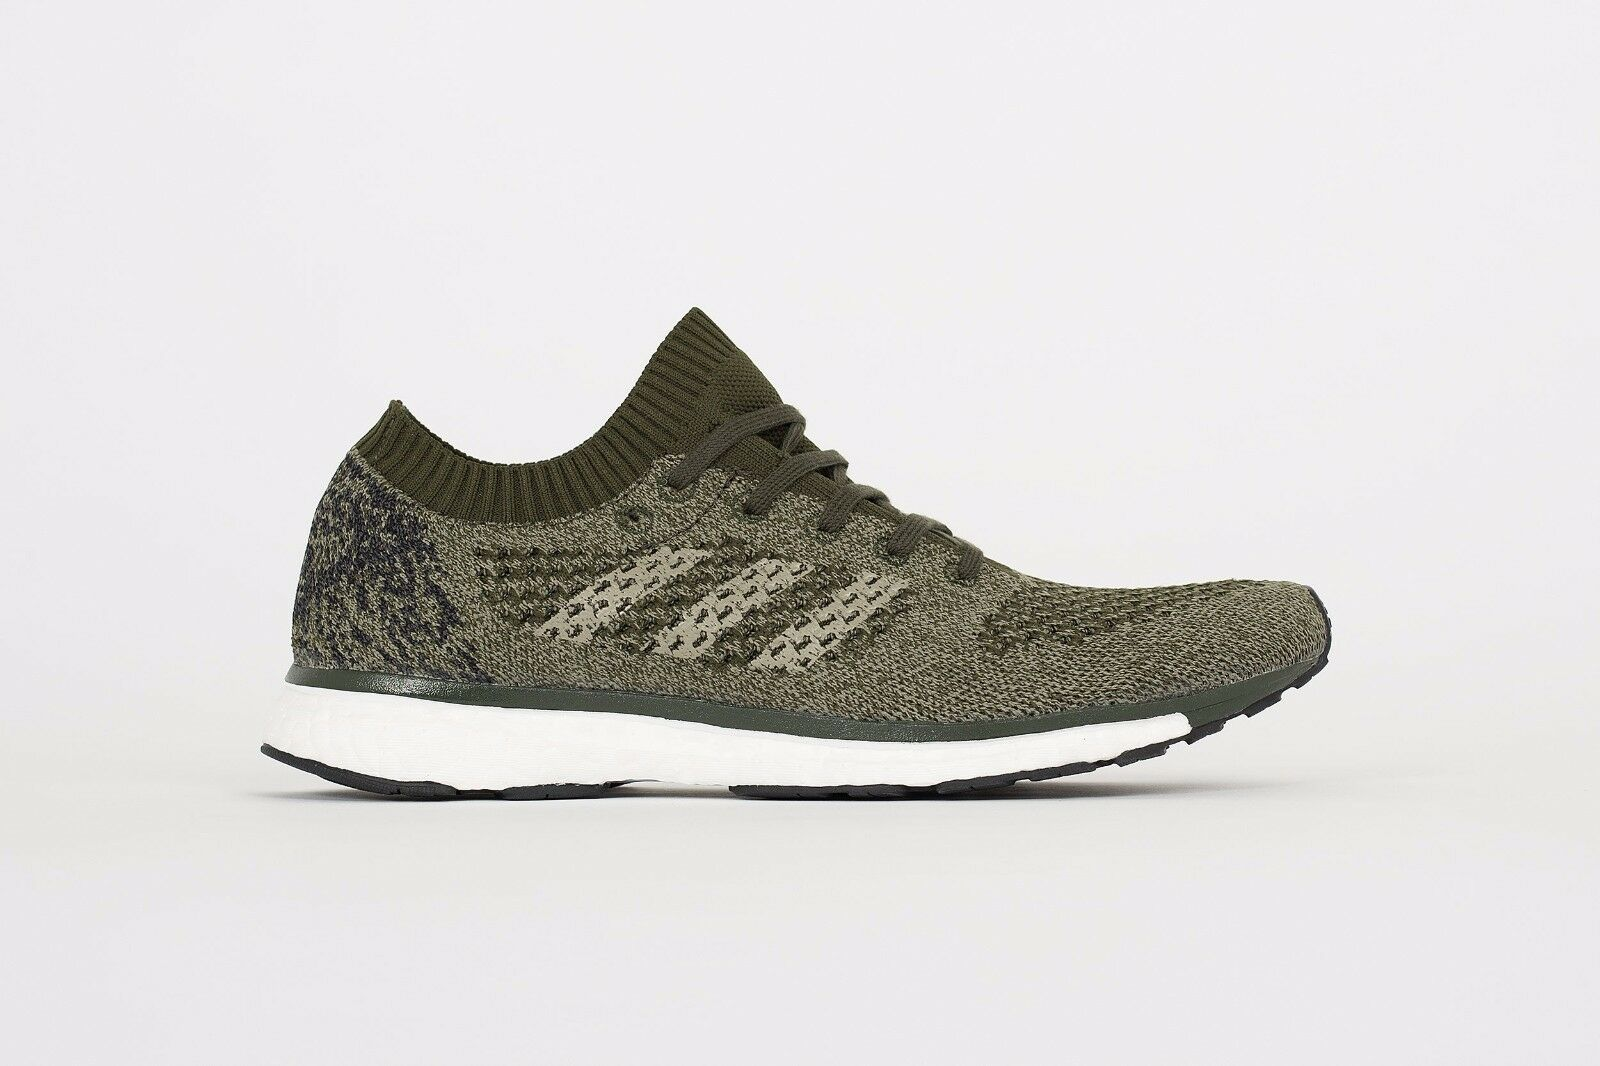 Cargo Night Olive LTD Prime Adizero Adidas Size PK Boost